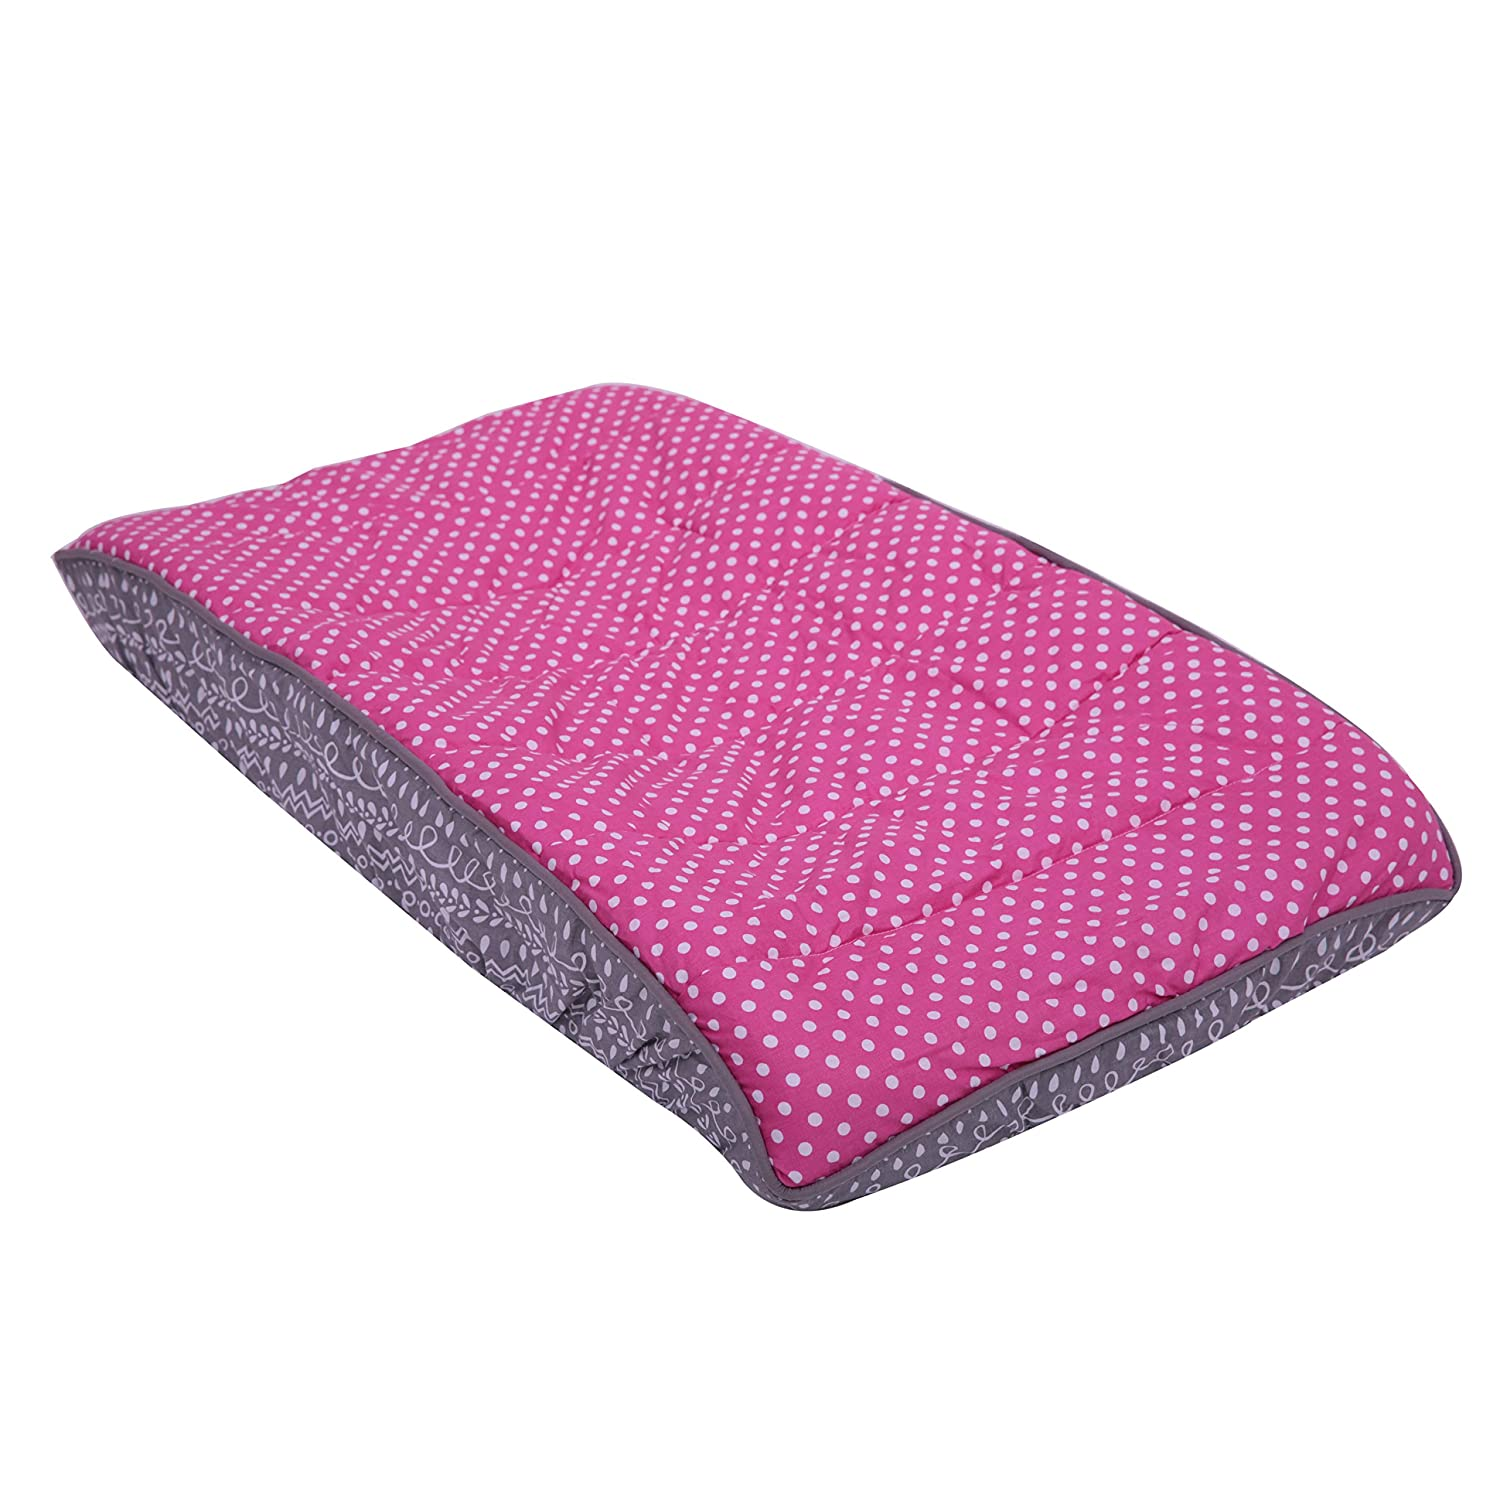 Bacati Owls Pink Dots Girls Cotton Changing Pad Cover, Pink/Grey